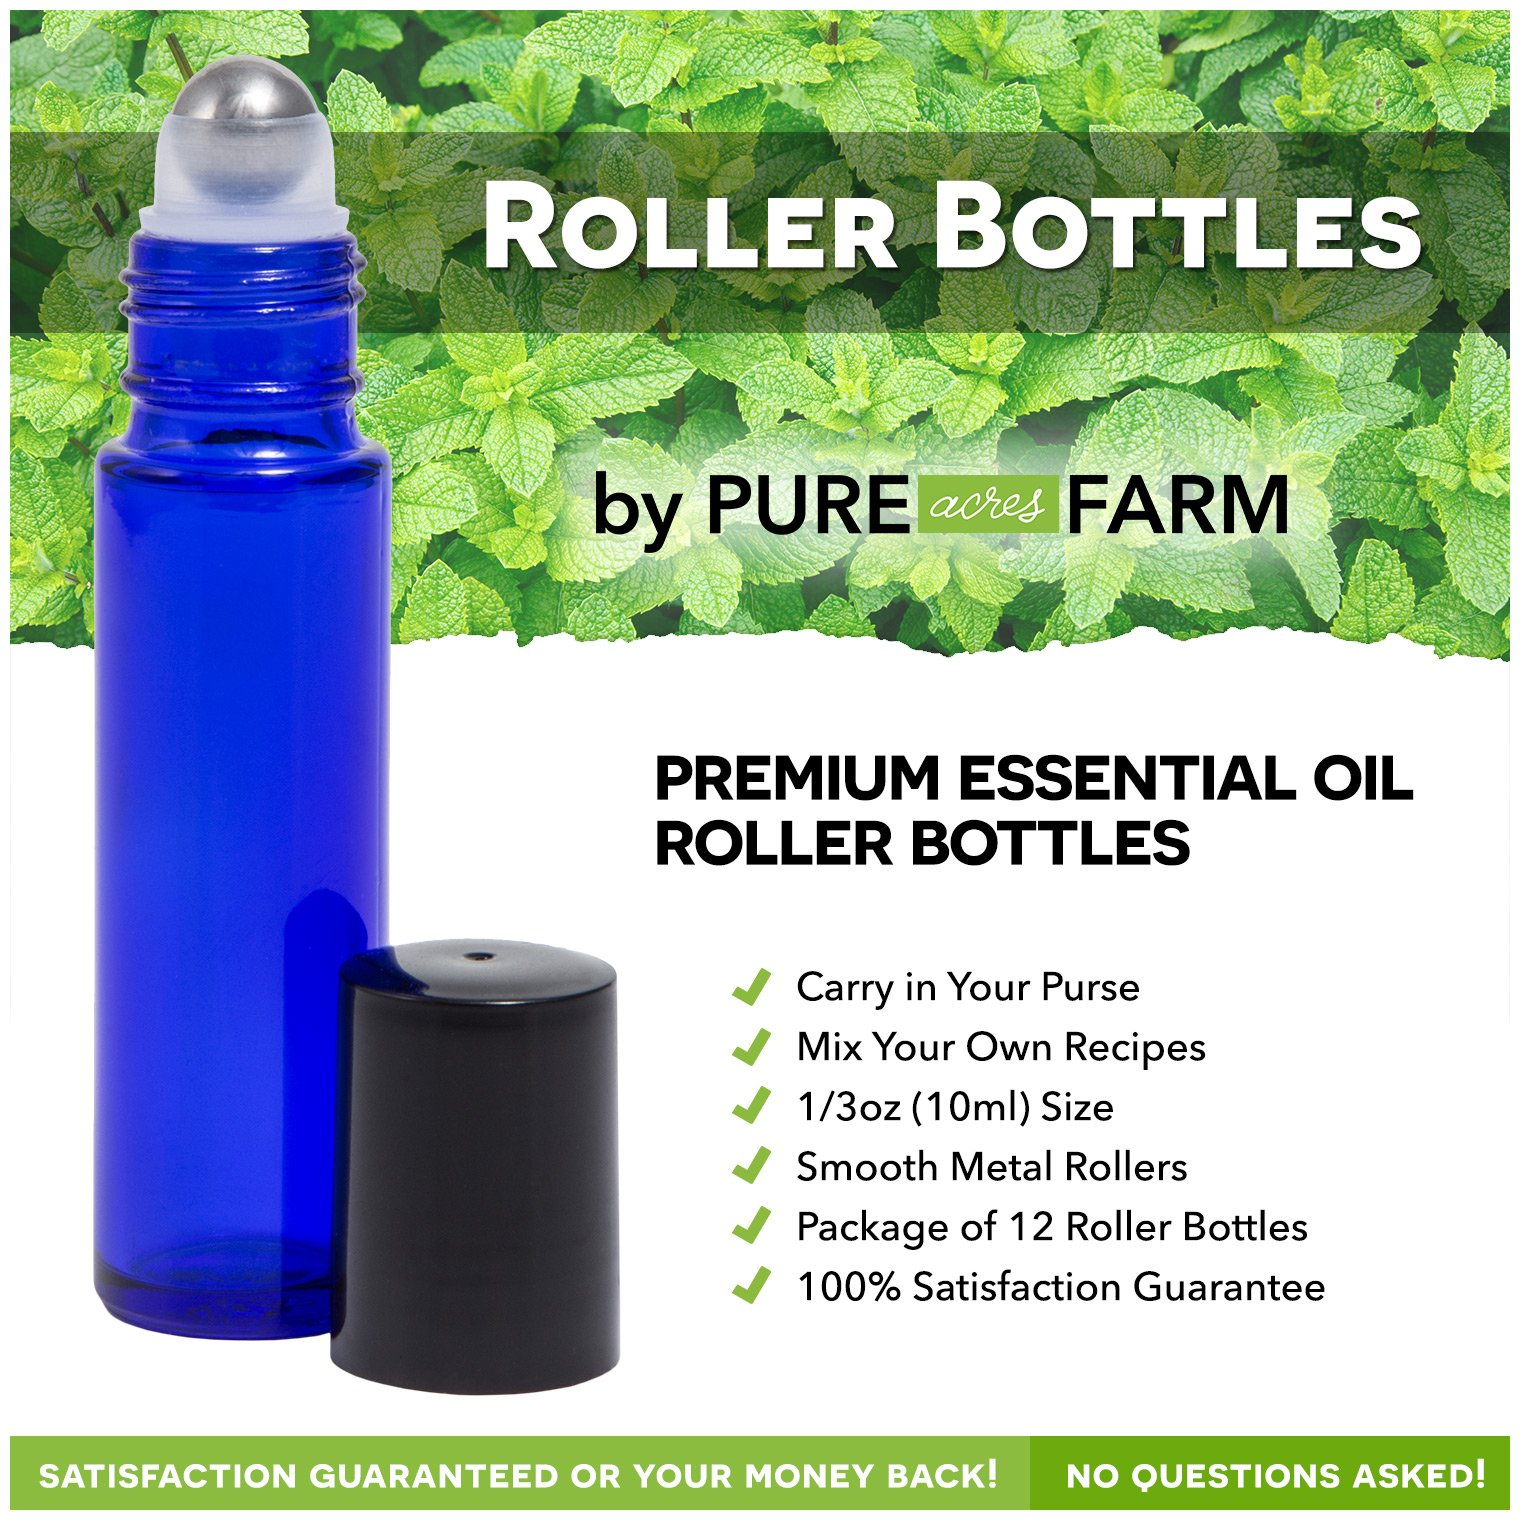 Pure Acres Farm, 12, Cobalt Blue, 10 ml Glass Roll-on Bottles with Stainless Steel Roller Balls. 3 ml Droppers included by Pure Acres Farm (Image #2)